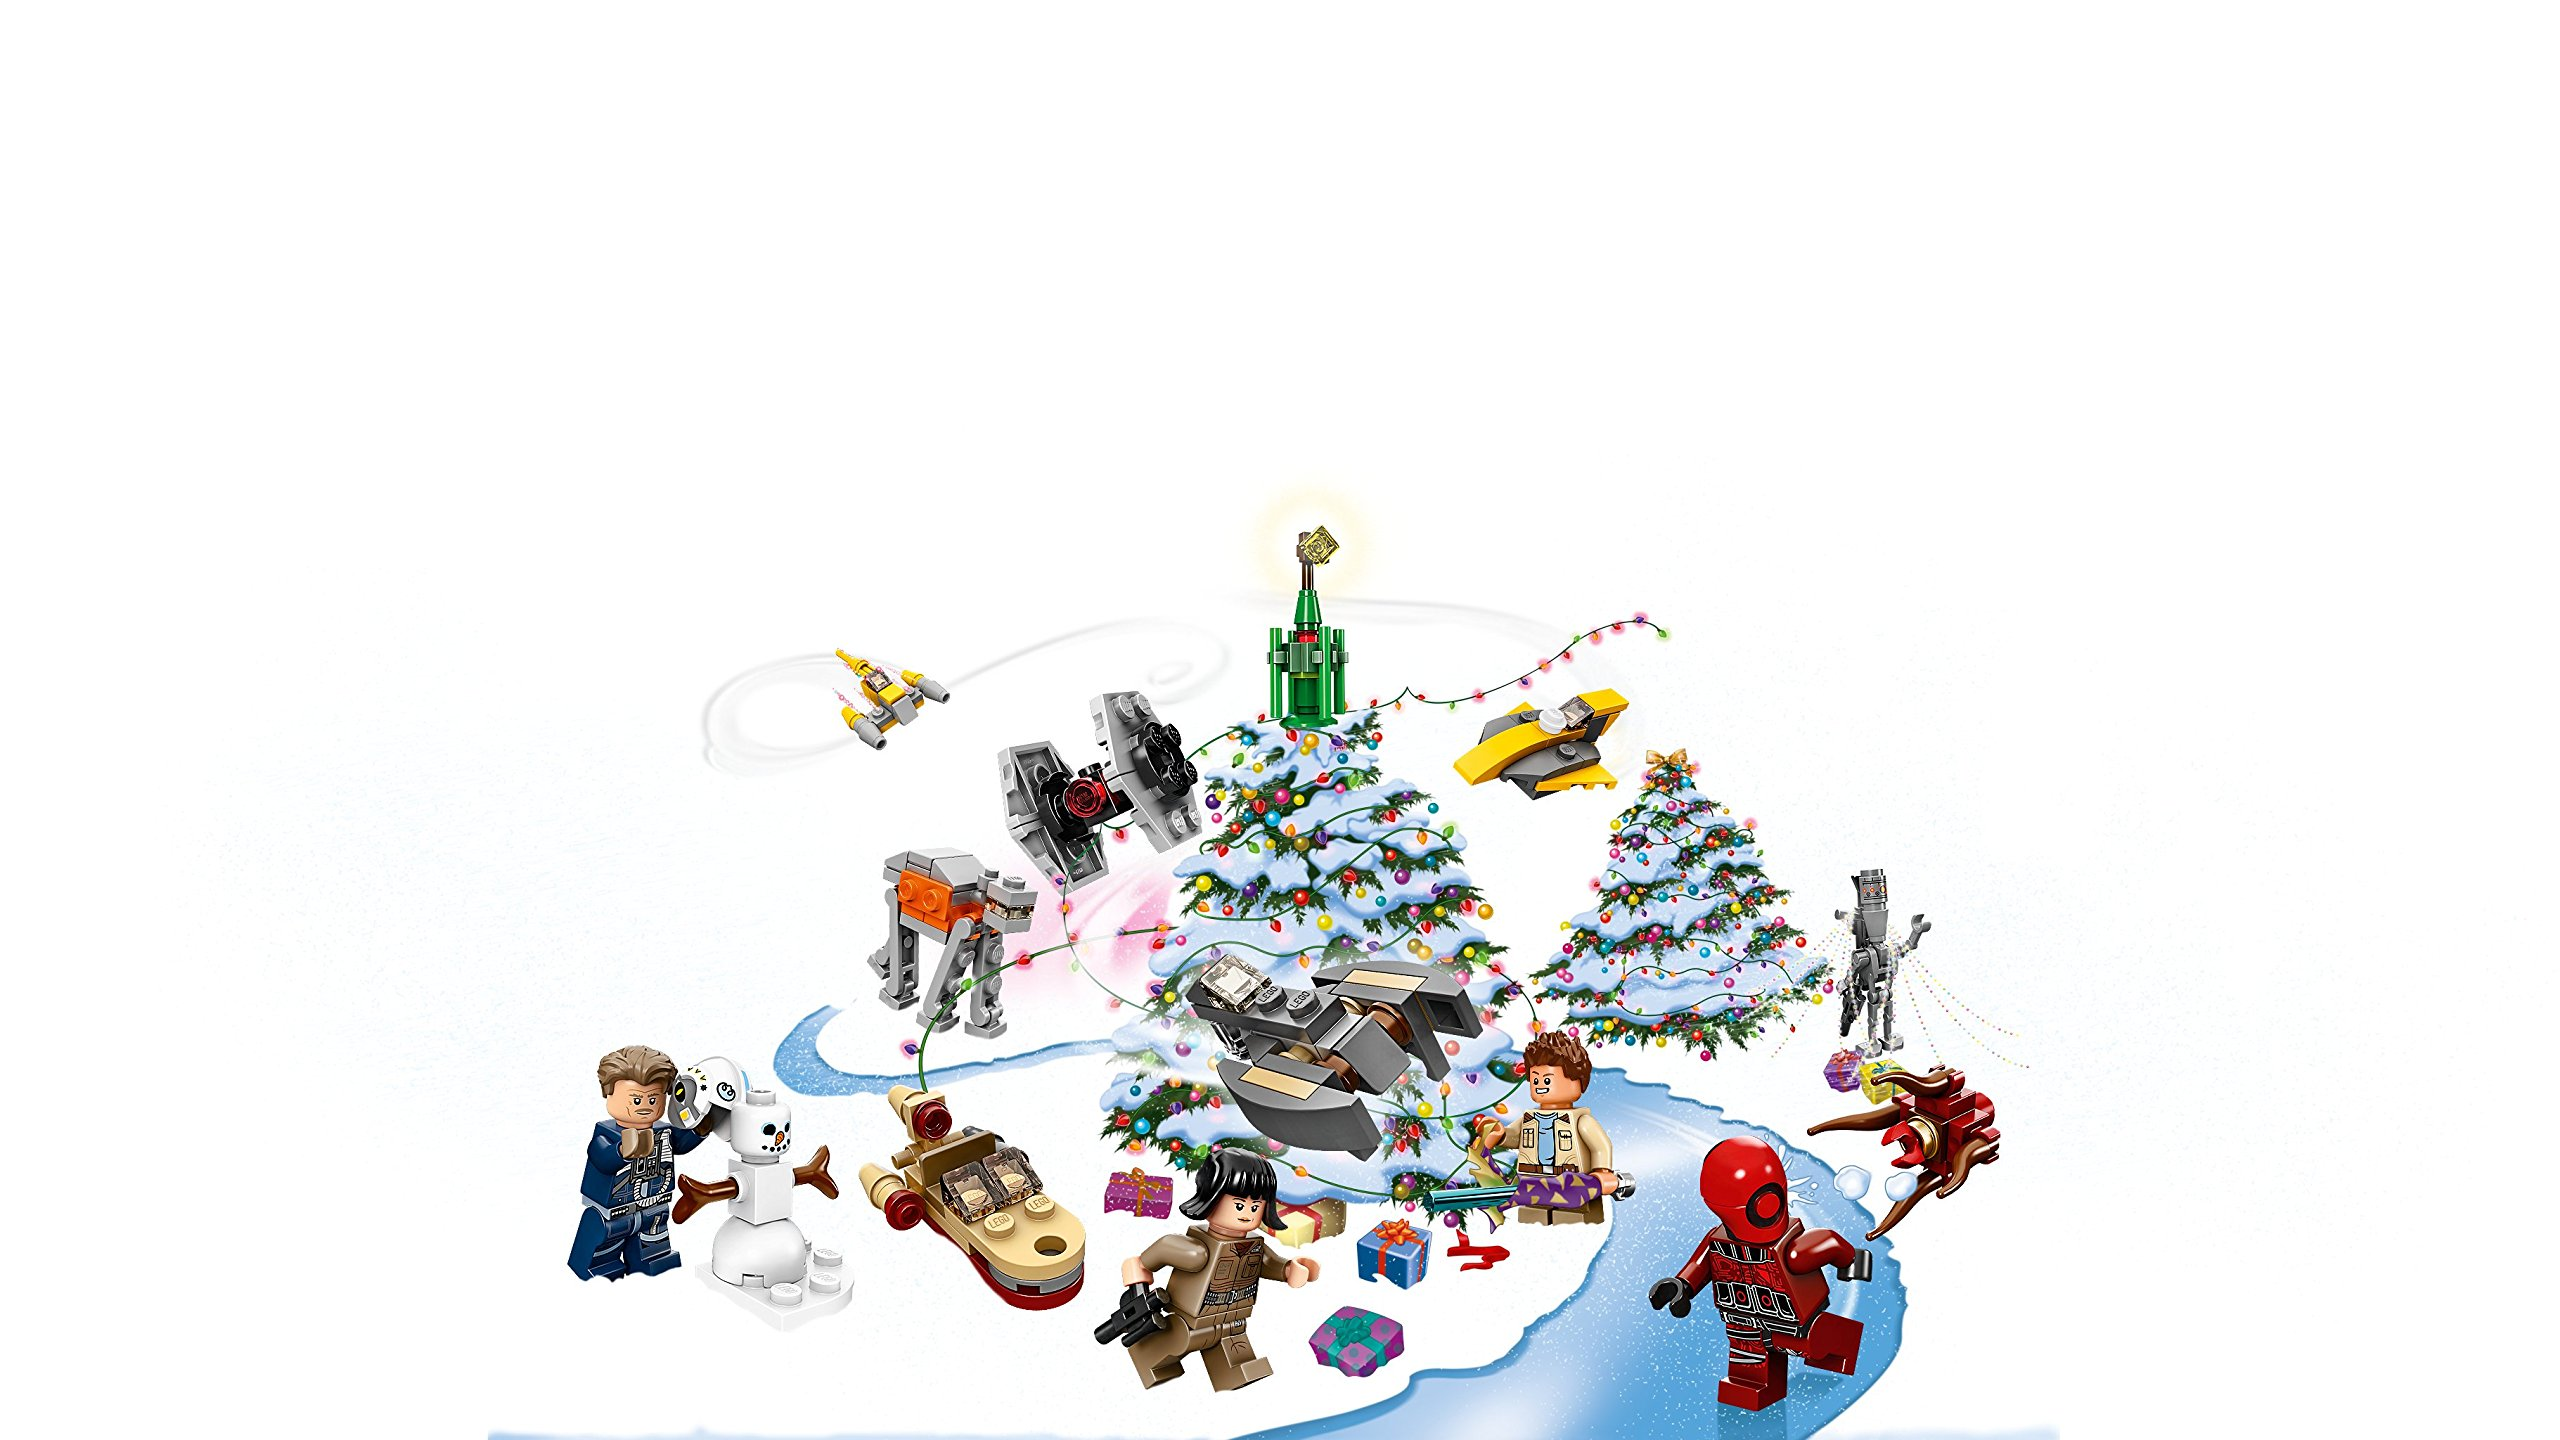 Lego Star Wars Calendario dell'Avvento, 75213 4 spesavip